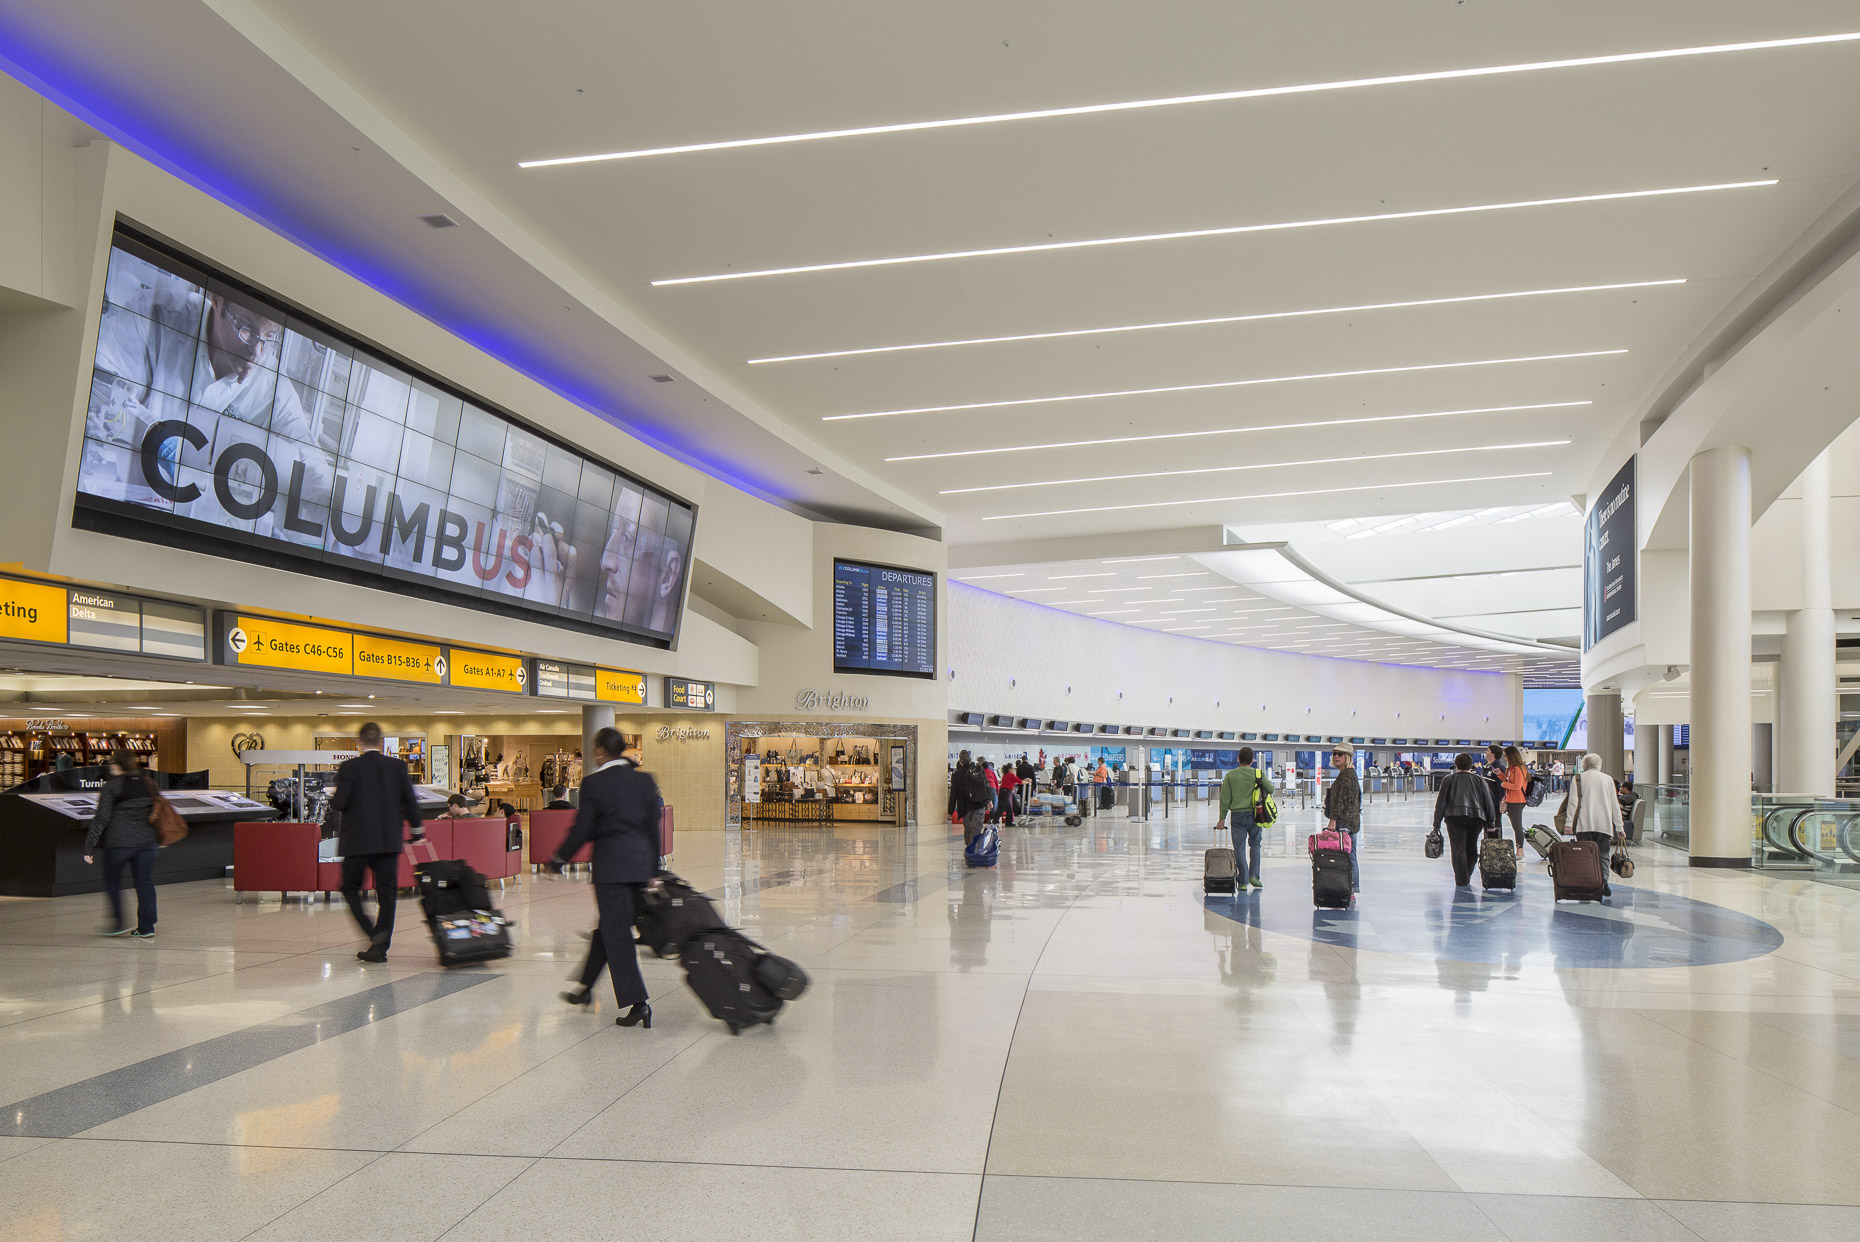 John Glenn International Airport Revitalization by AECOM & Turner Construction photographed by BRad Feinknopf based in Columbus, Ohio